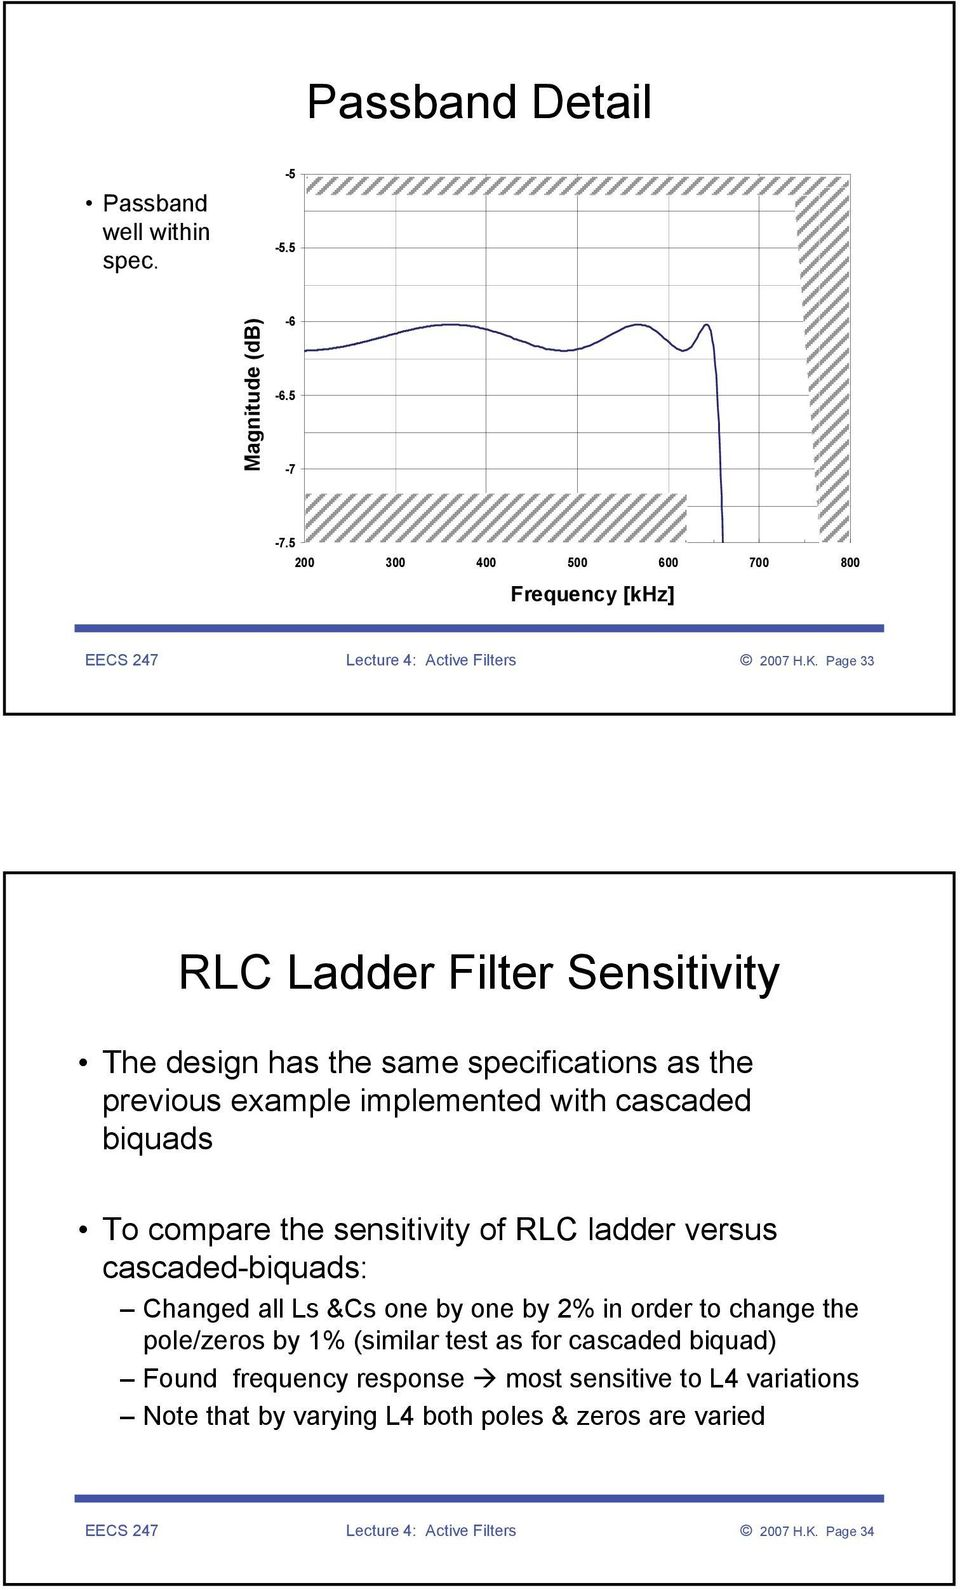 Pge 33 C Ldder Filter Sensitivity The design hs the sme specifictions s the previous exmple implemented with cscded biquds To compre the sensitivity